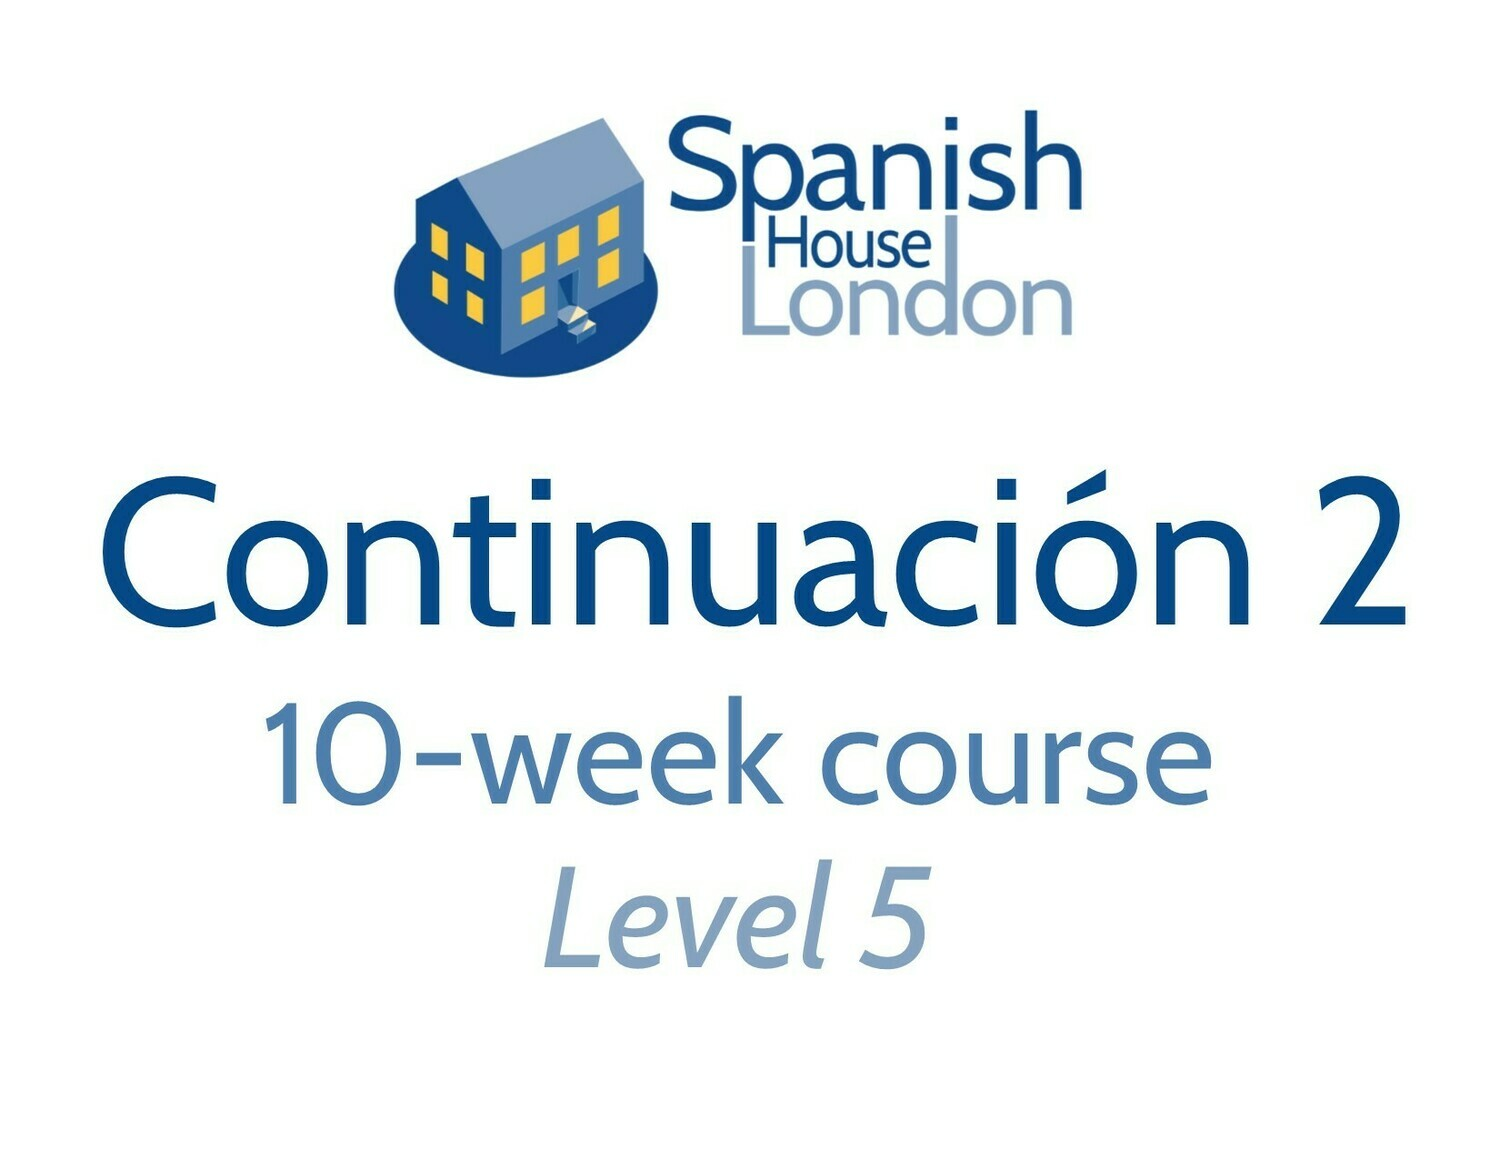 Continuacion 2 Course starting on 22nd August at 11.30am